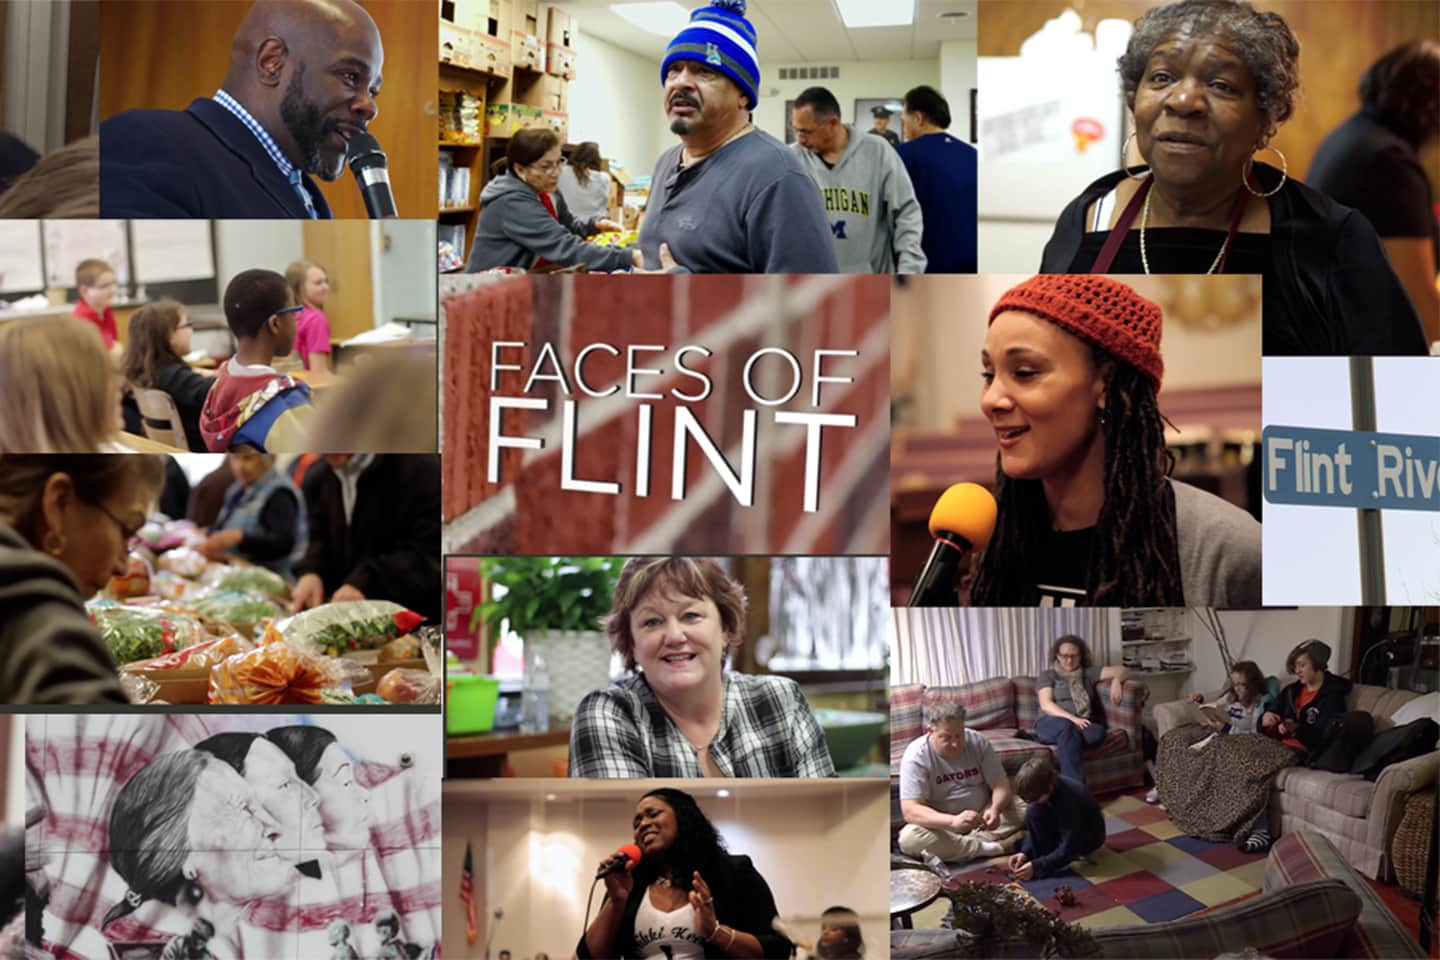 poster for the documentary Faces of Flint featuring a still image from each of the episodes.